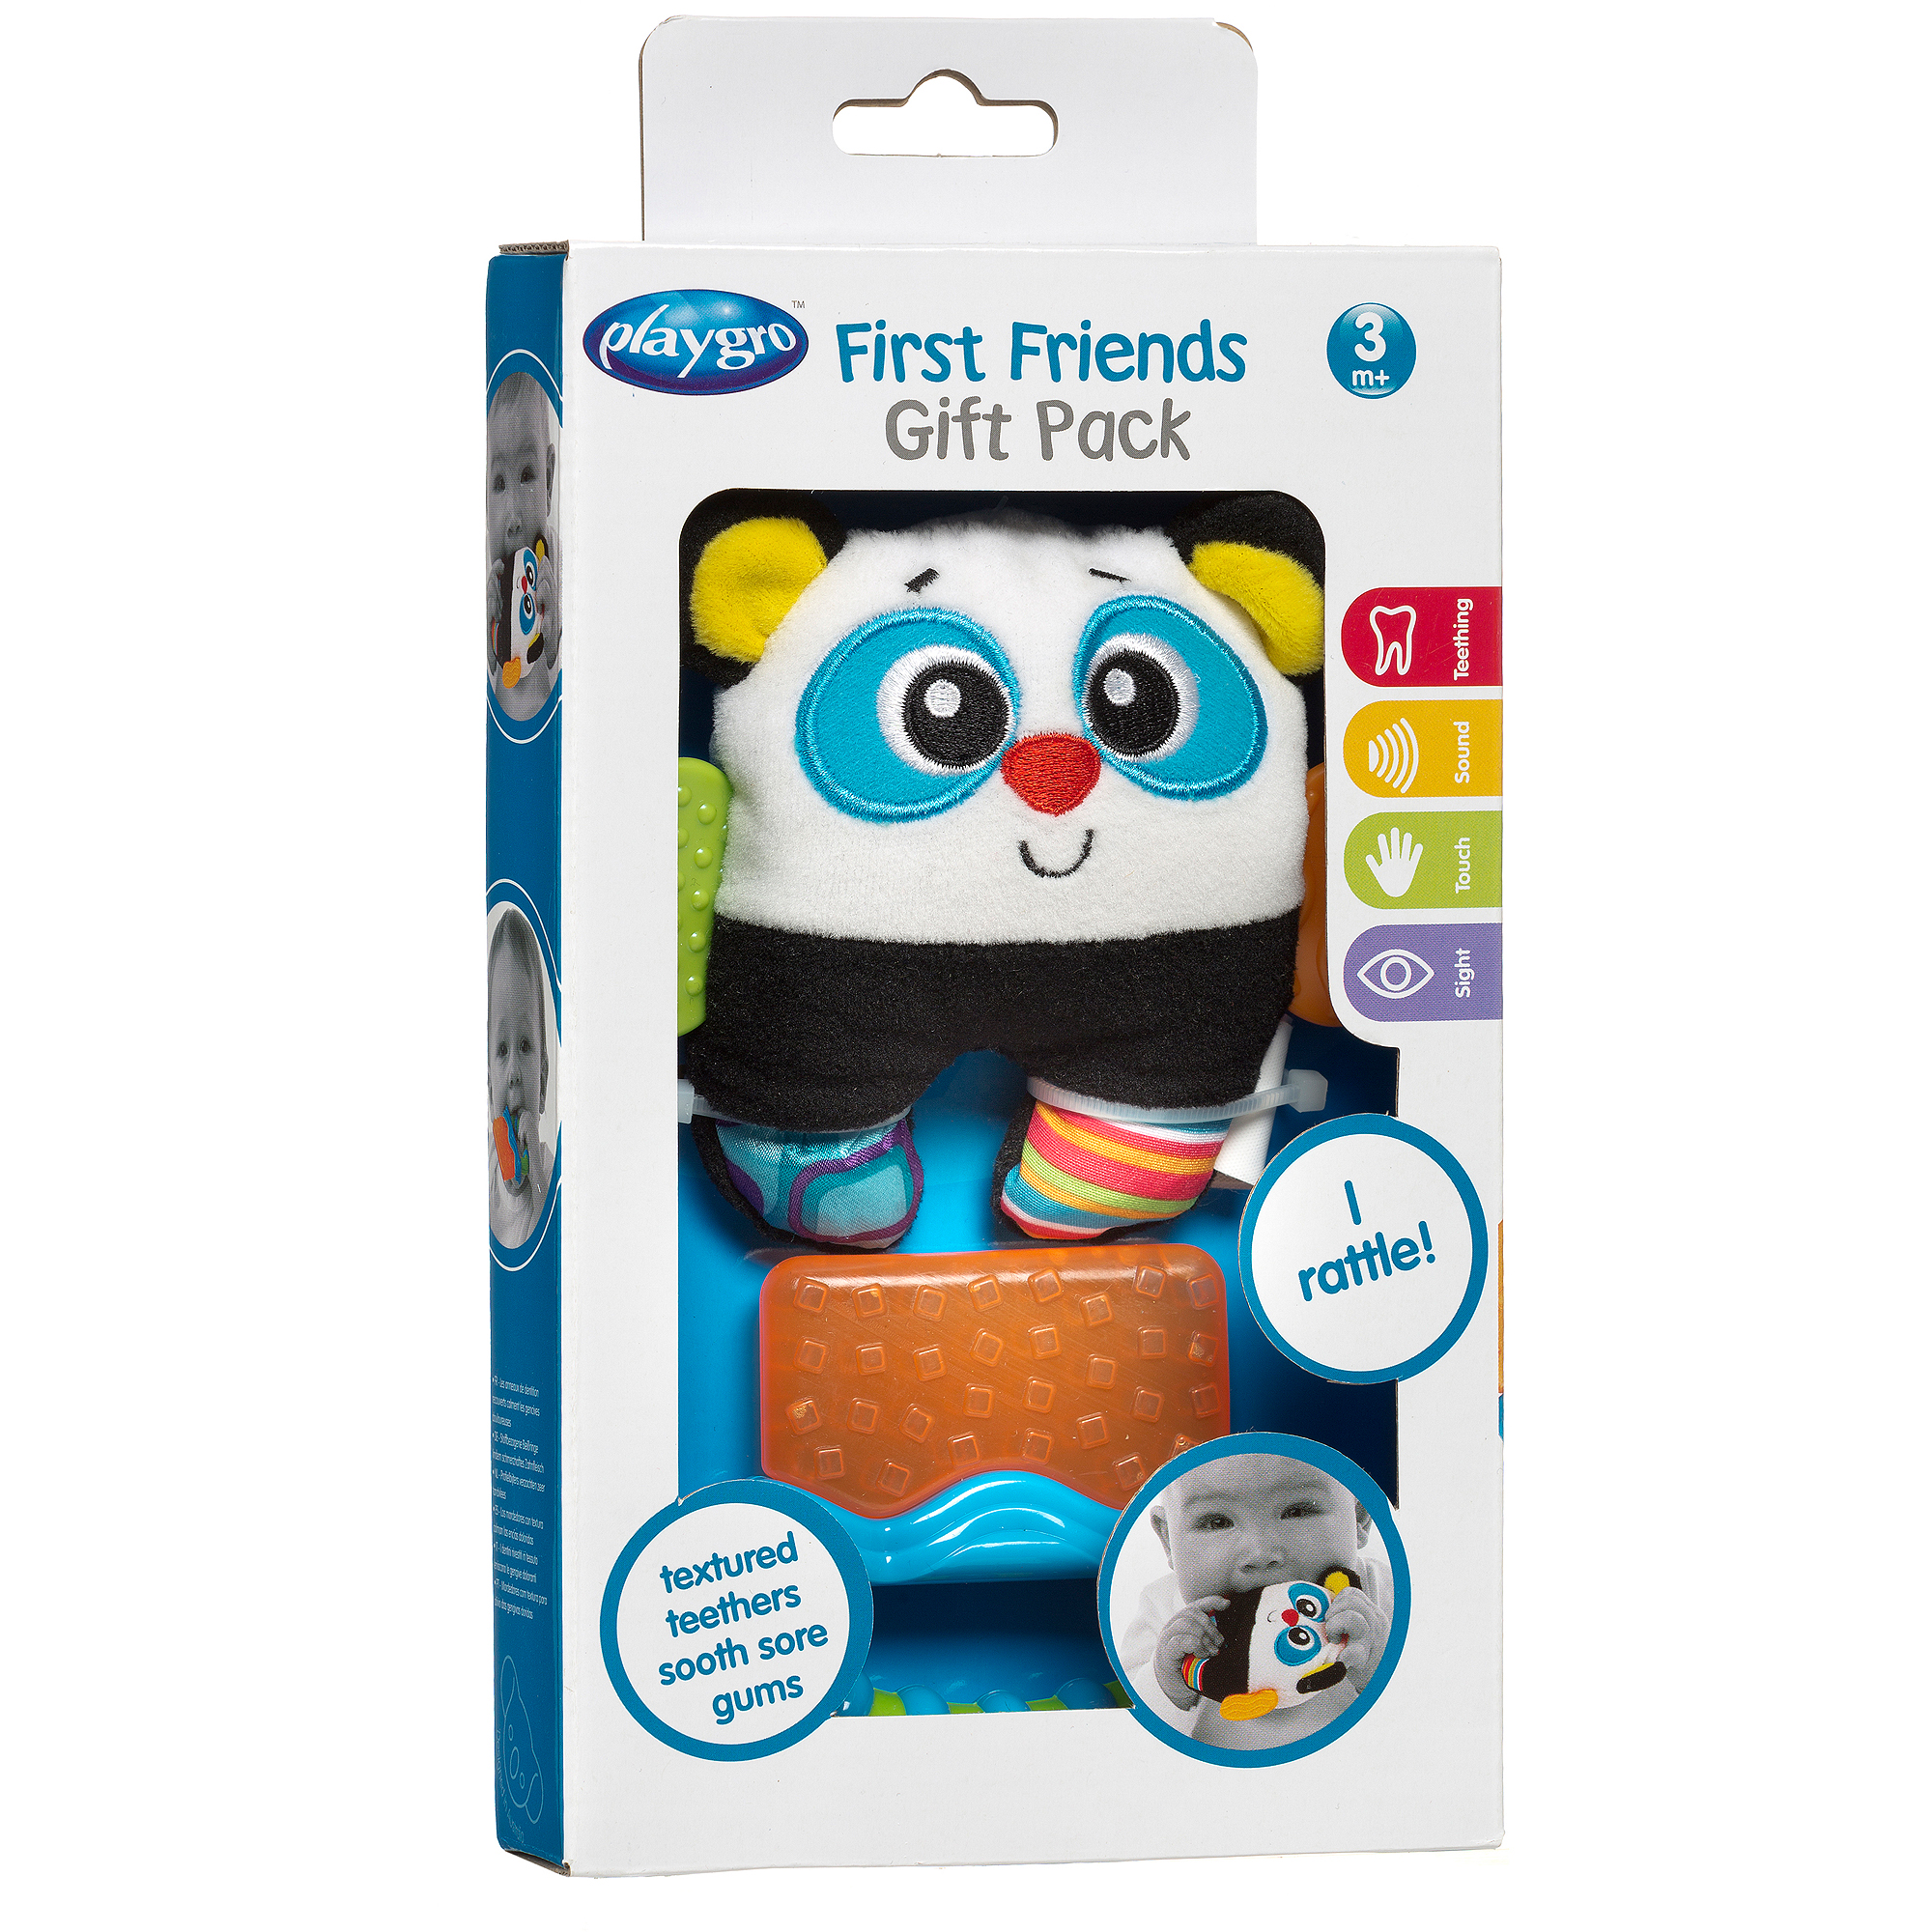 Playgro First Friends Gift Pack, Blue